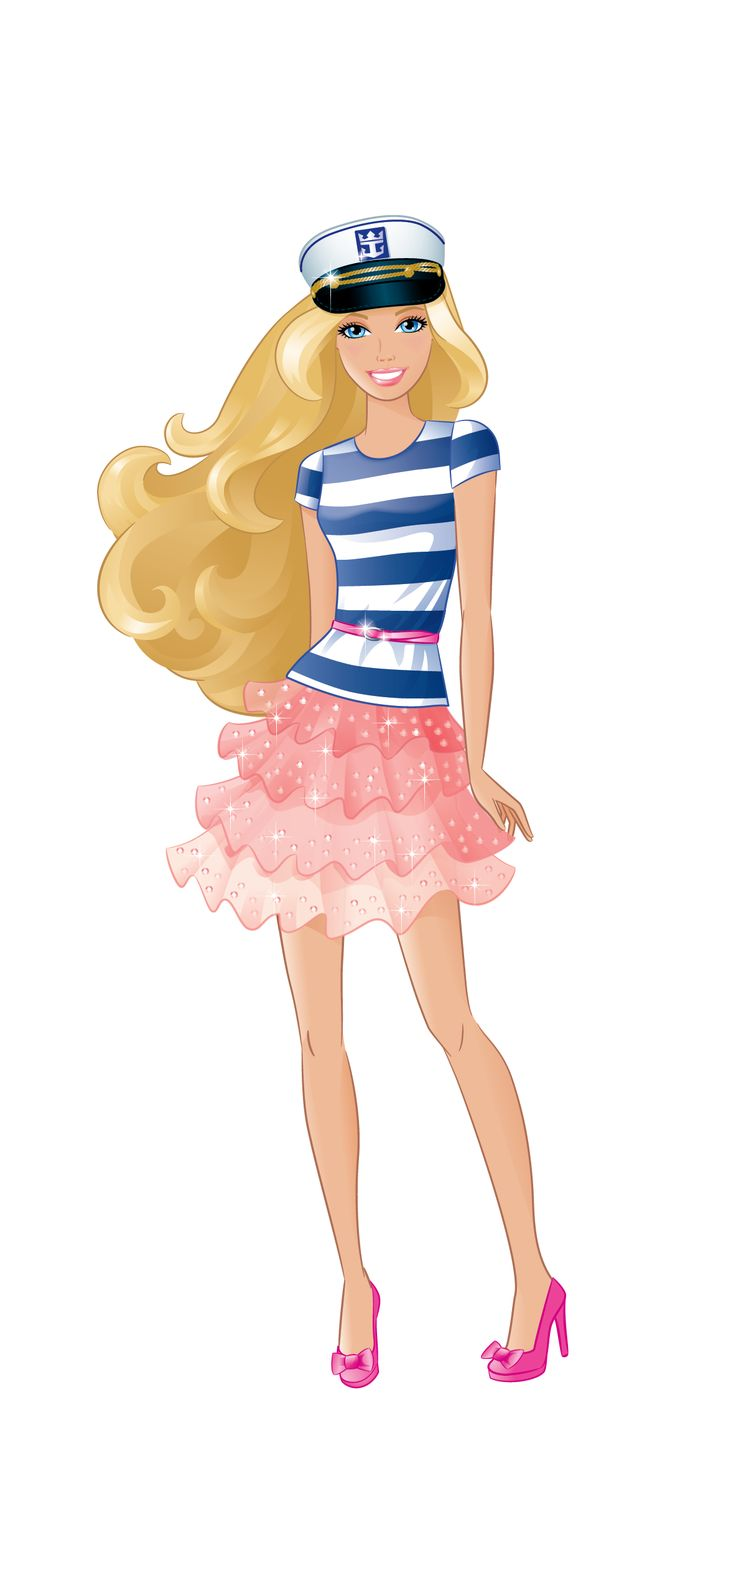 30 best b a r b i e images on pinterest barbie doll barbie dolls rh pinterest com barbie clipart black and white barbie clipart png